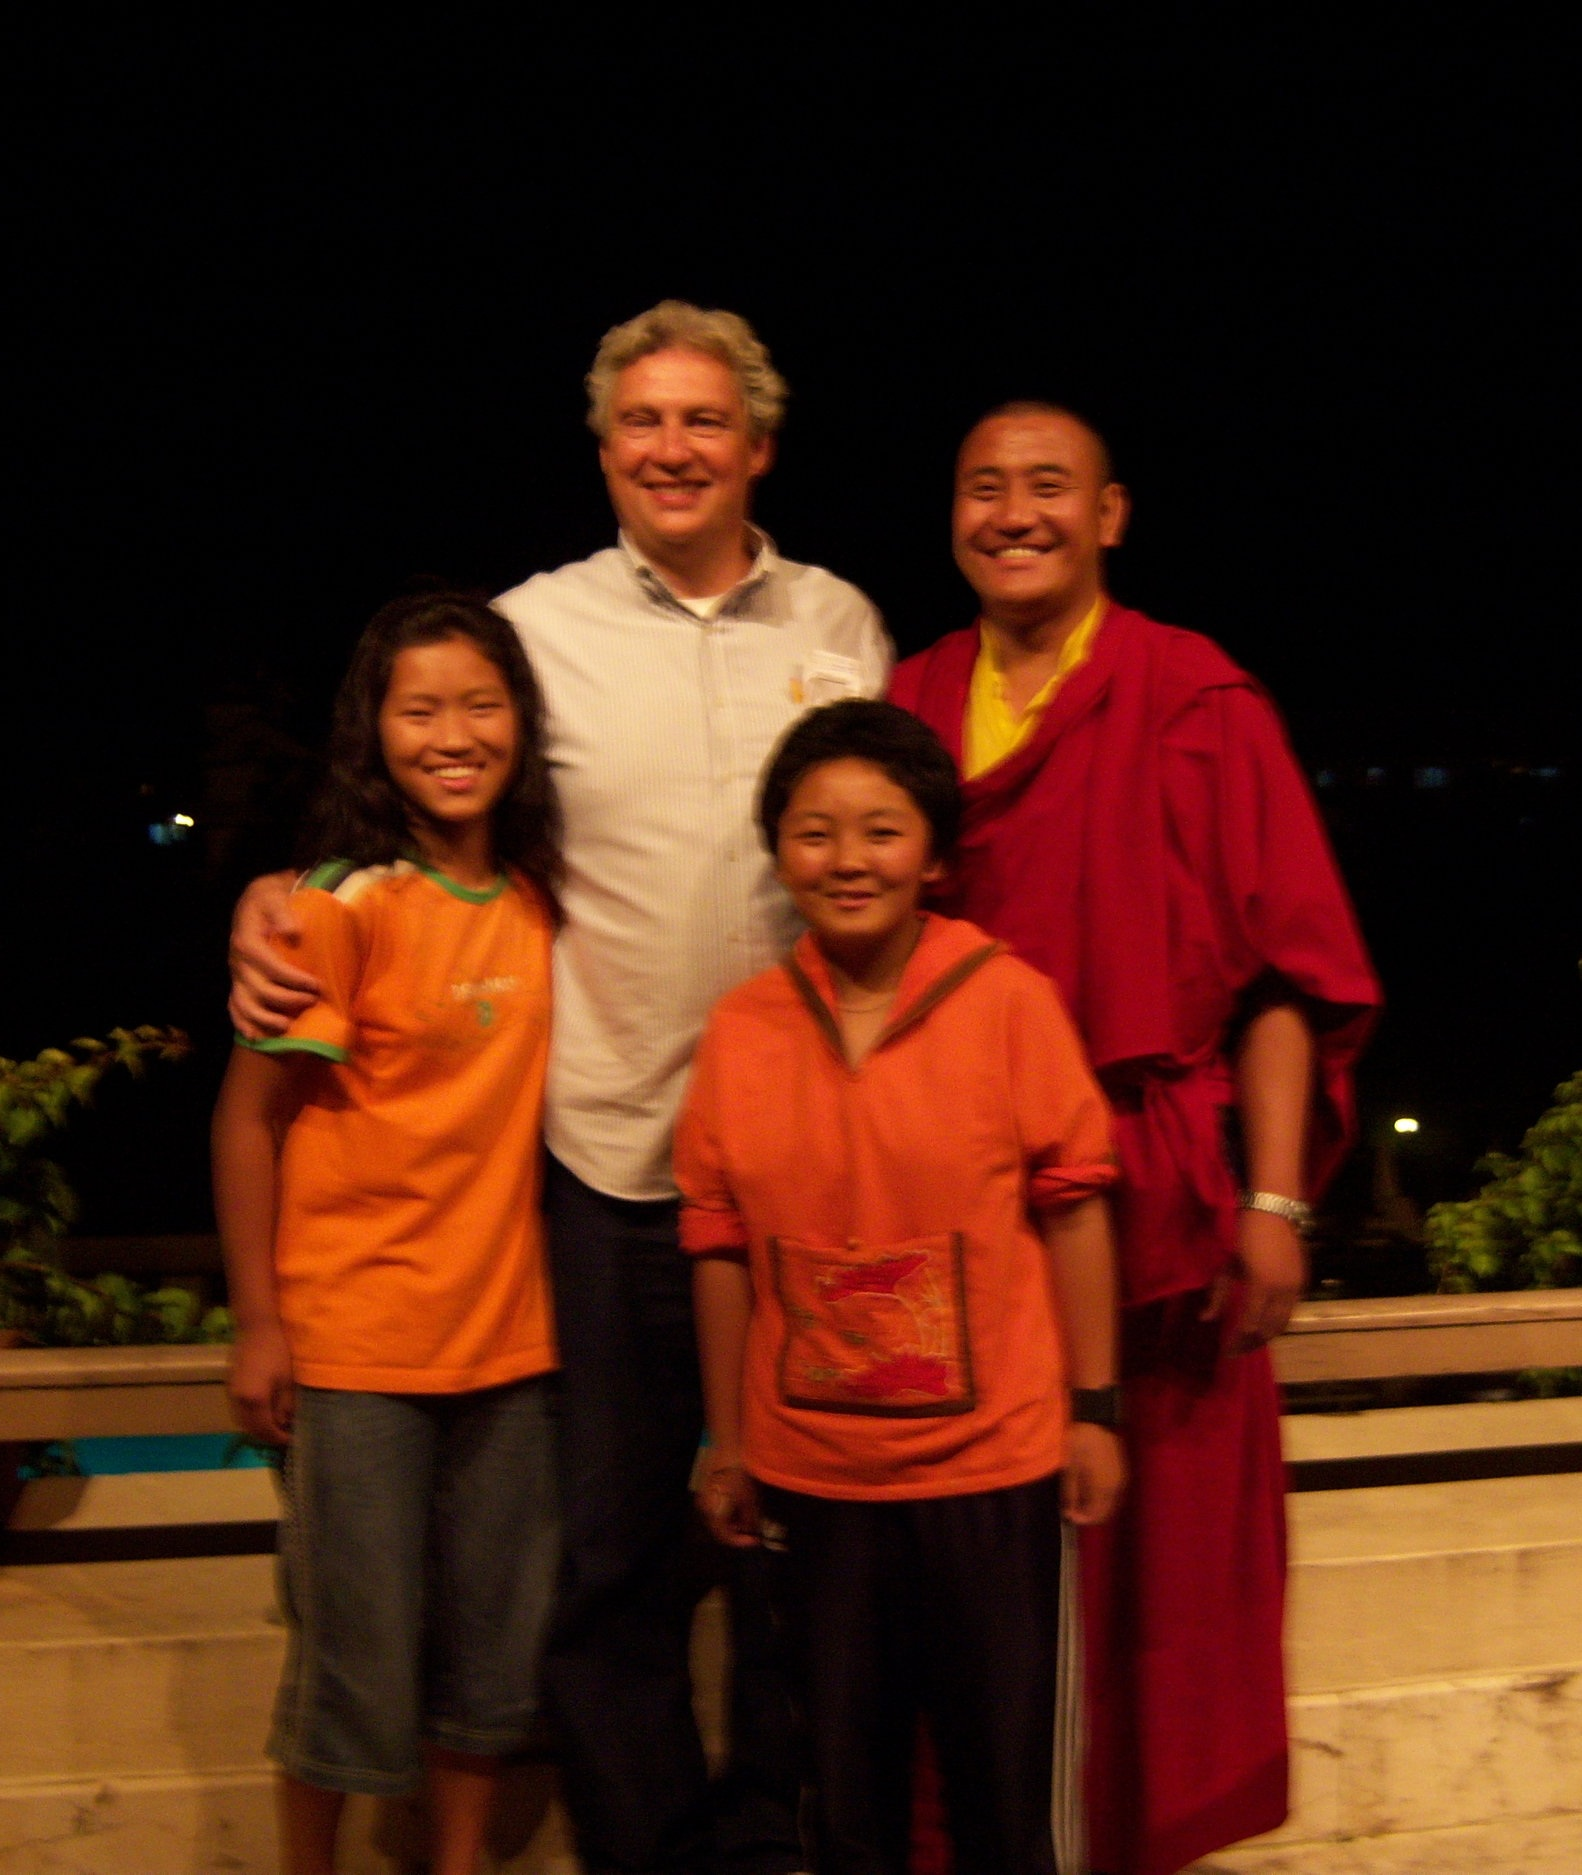 David pictured with friends in Kathmandu. He traveled to visit schools and work with children.